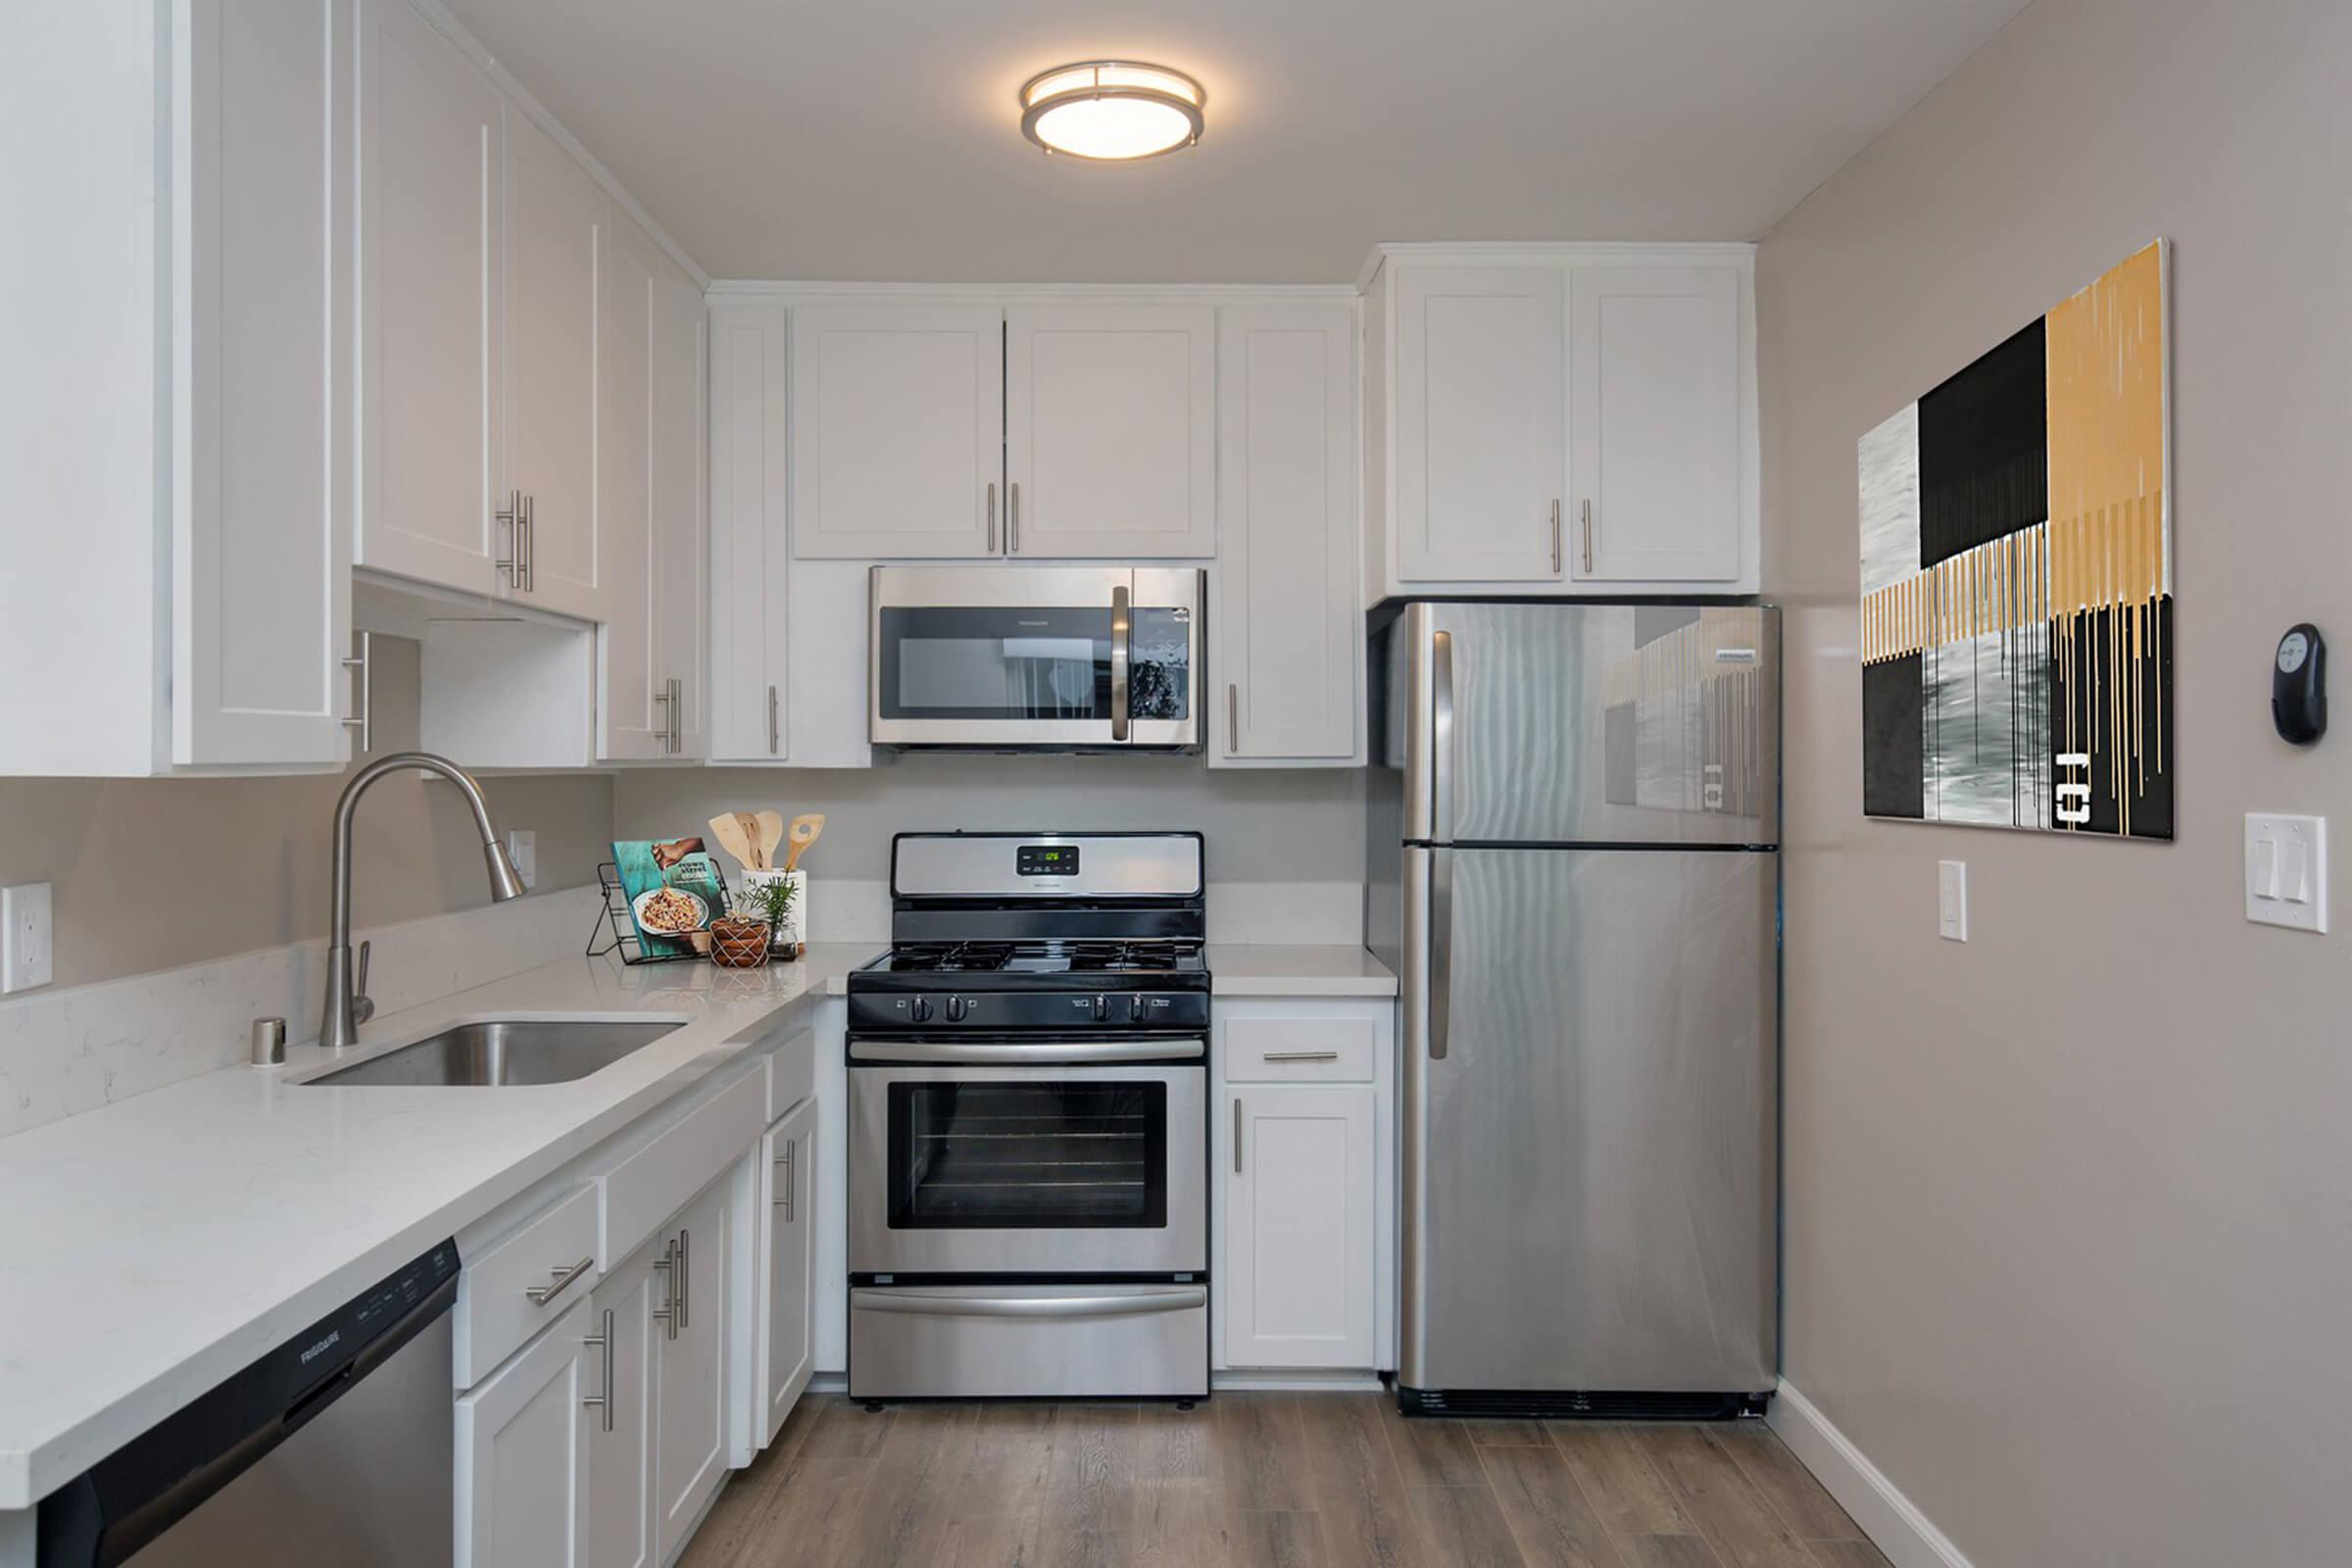 FULLY EQUIPPED KITCHEN AT THE CAPRI GLENDALE